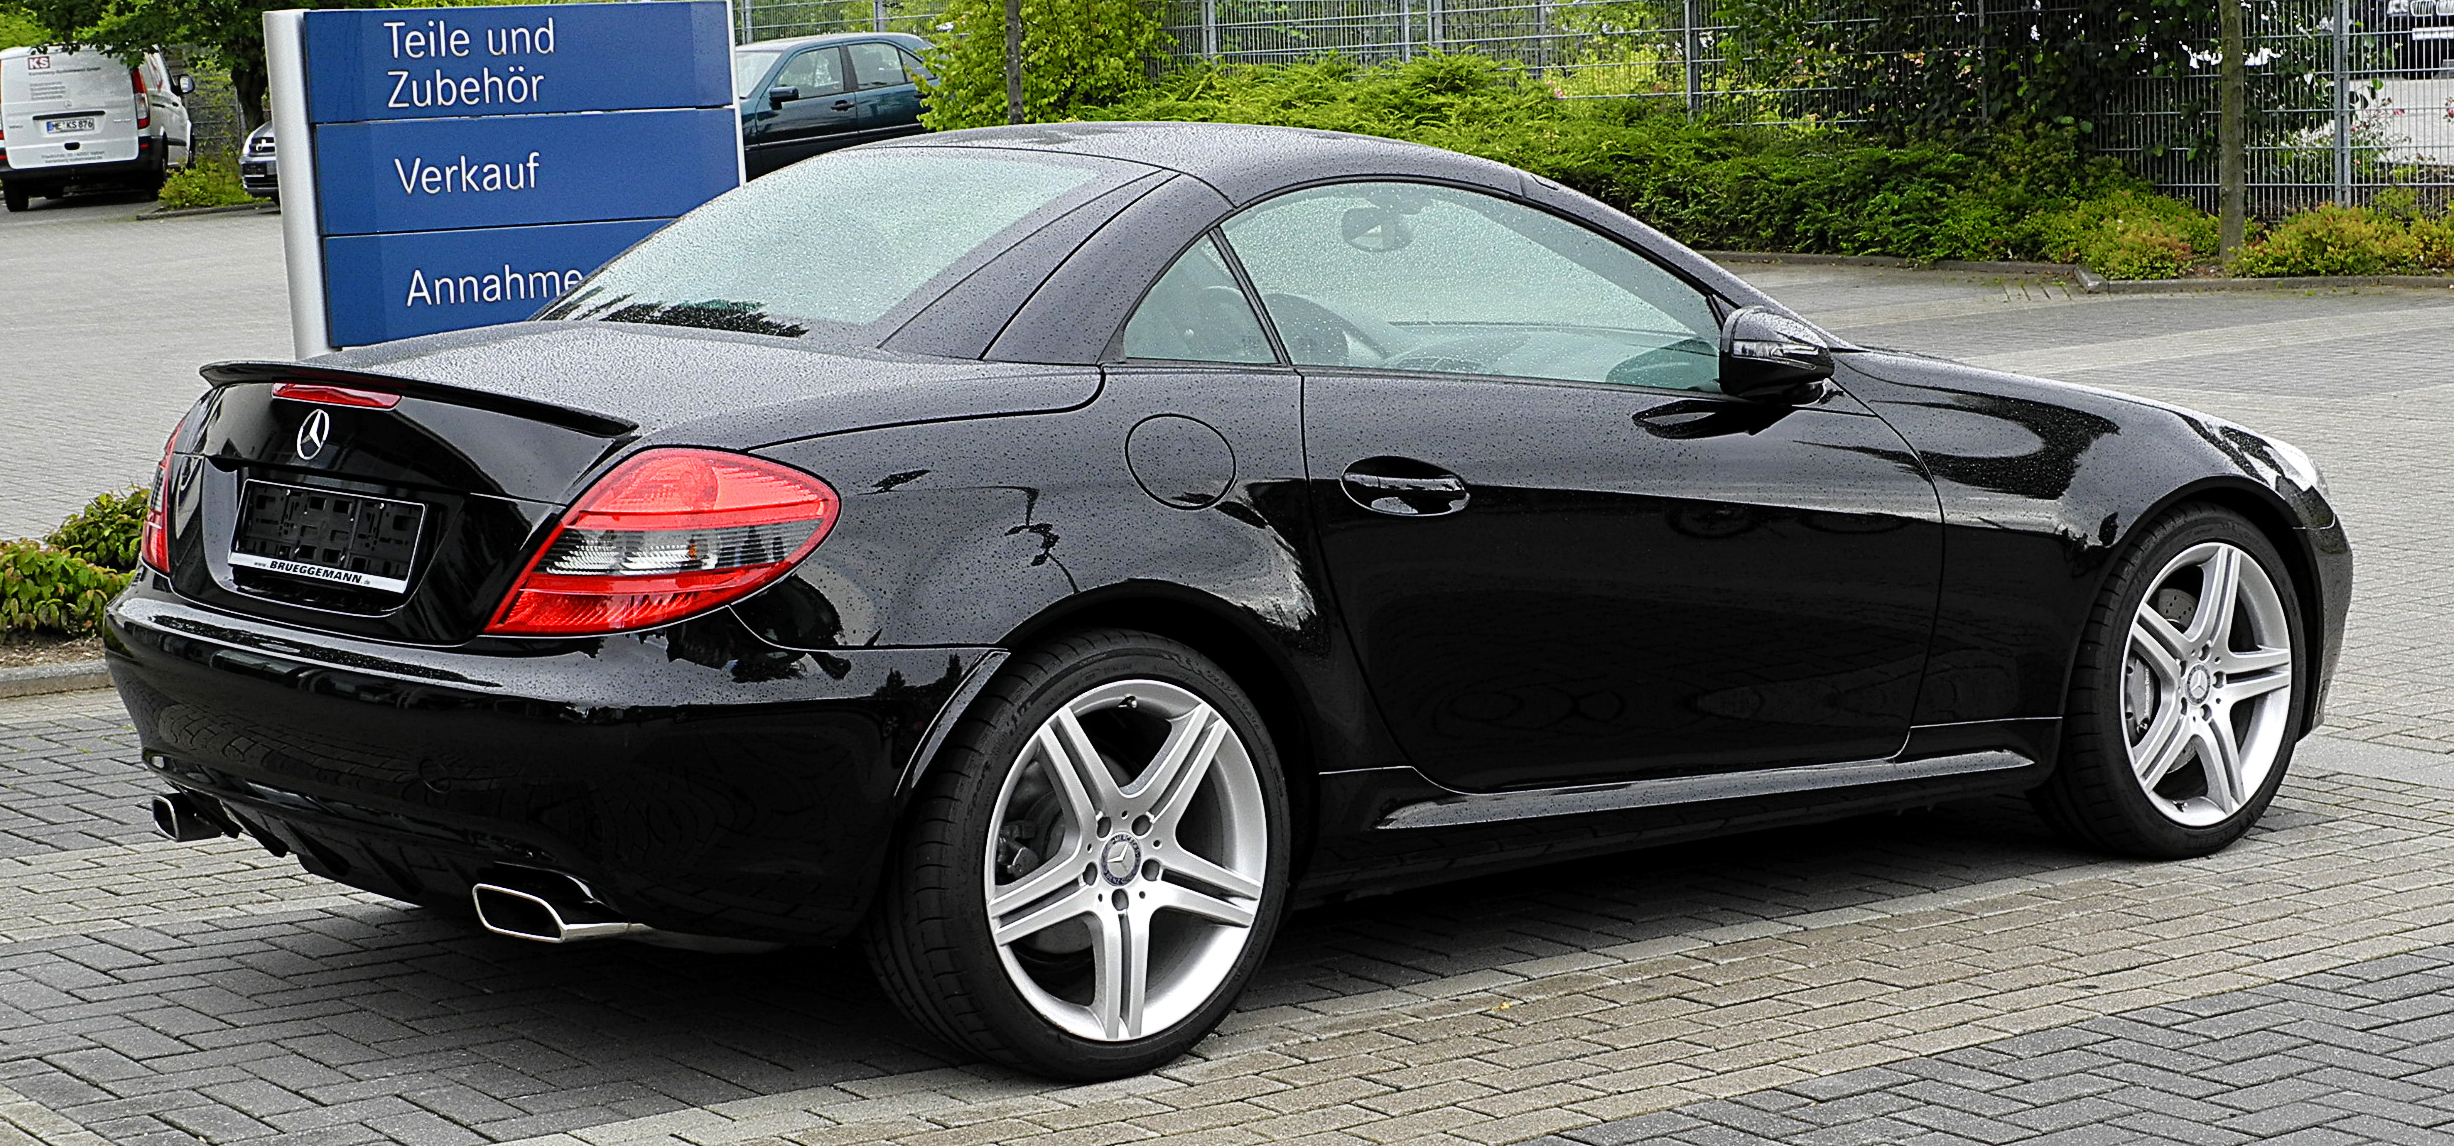 mercedes benz slk 200 kompressor r 171 facelift. Black Bedroom Furniture Sets. Home Design Ideas